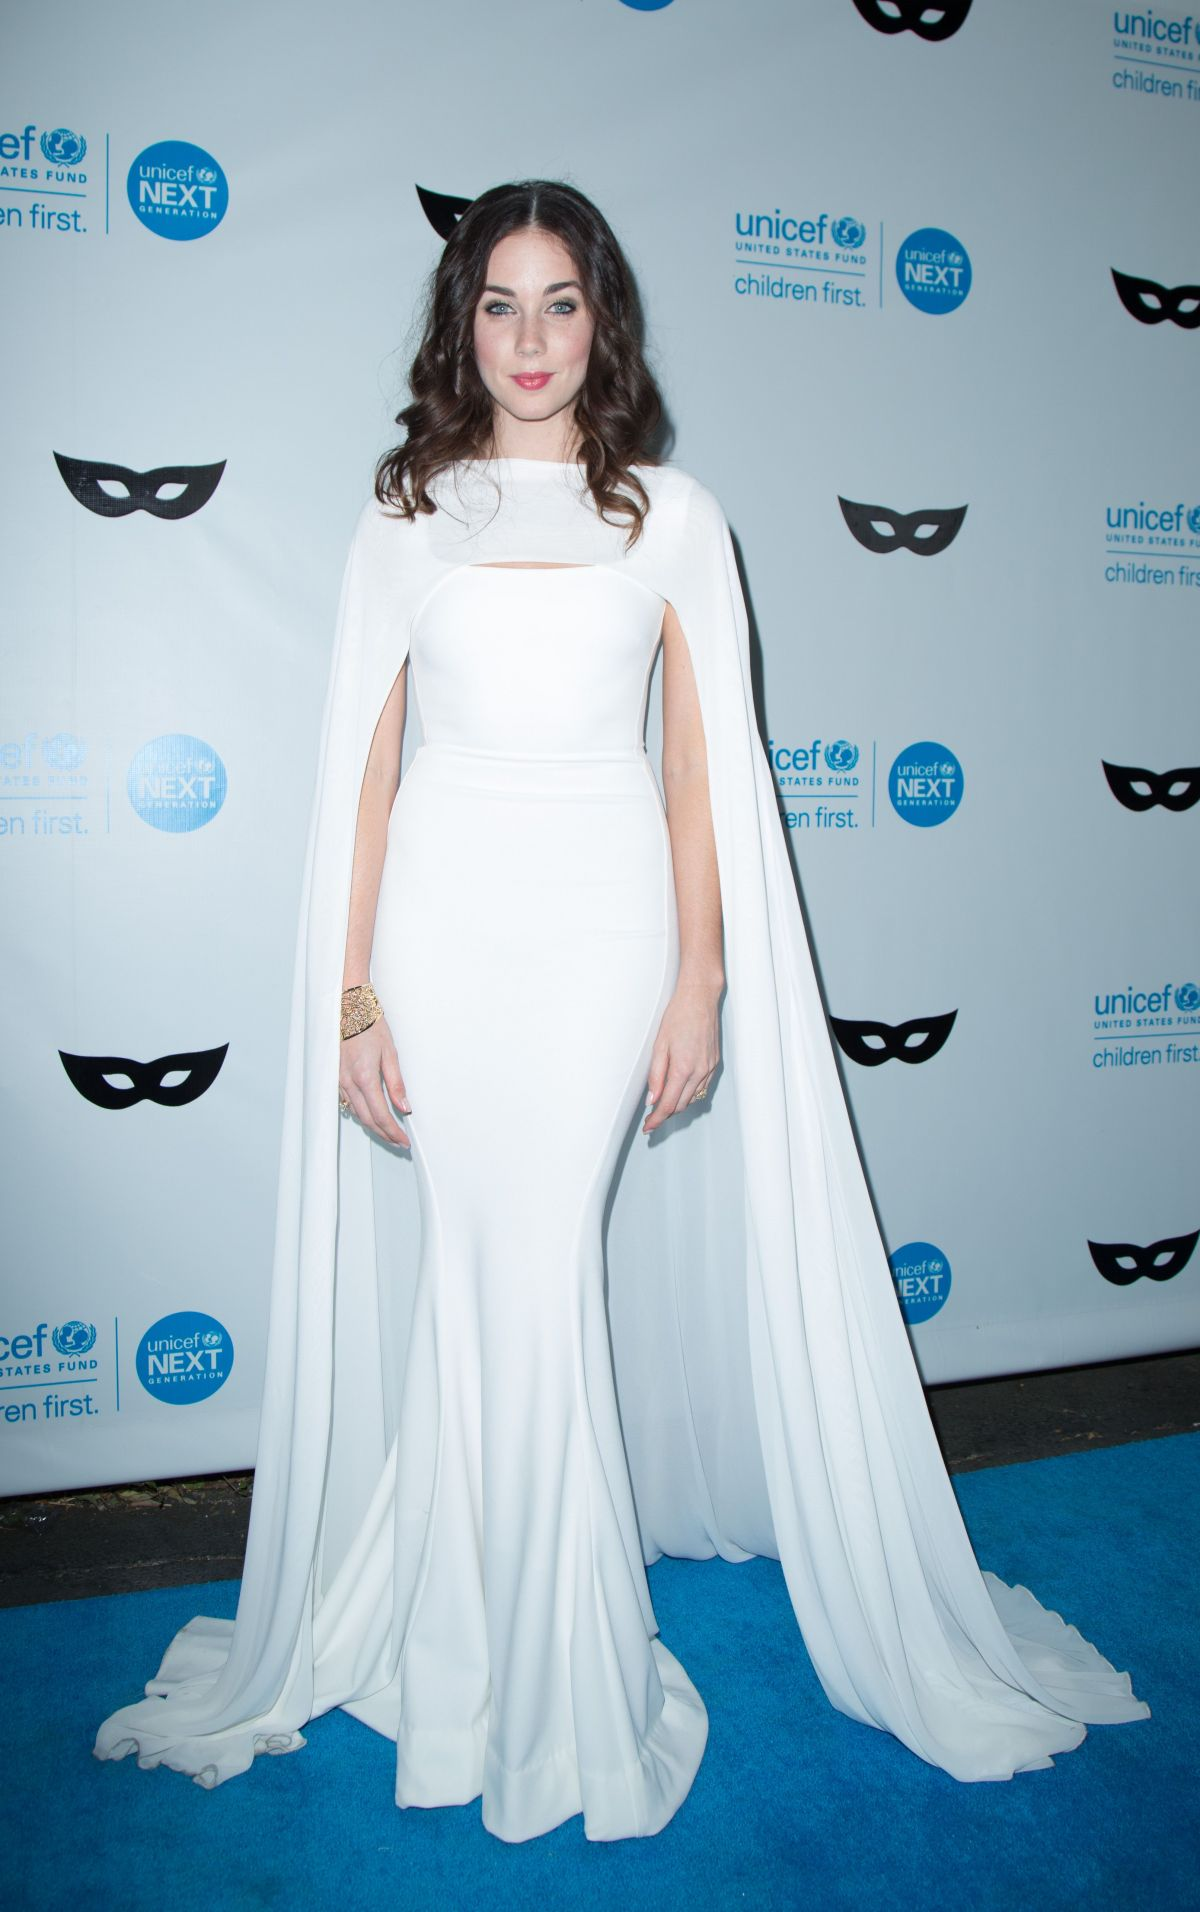 LYNDON SMITH at 2015 Unicef Black & White Masquerade Ball in Los Angeles 10/30/15